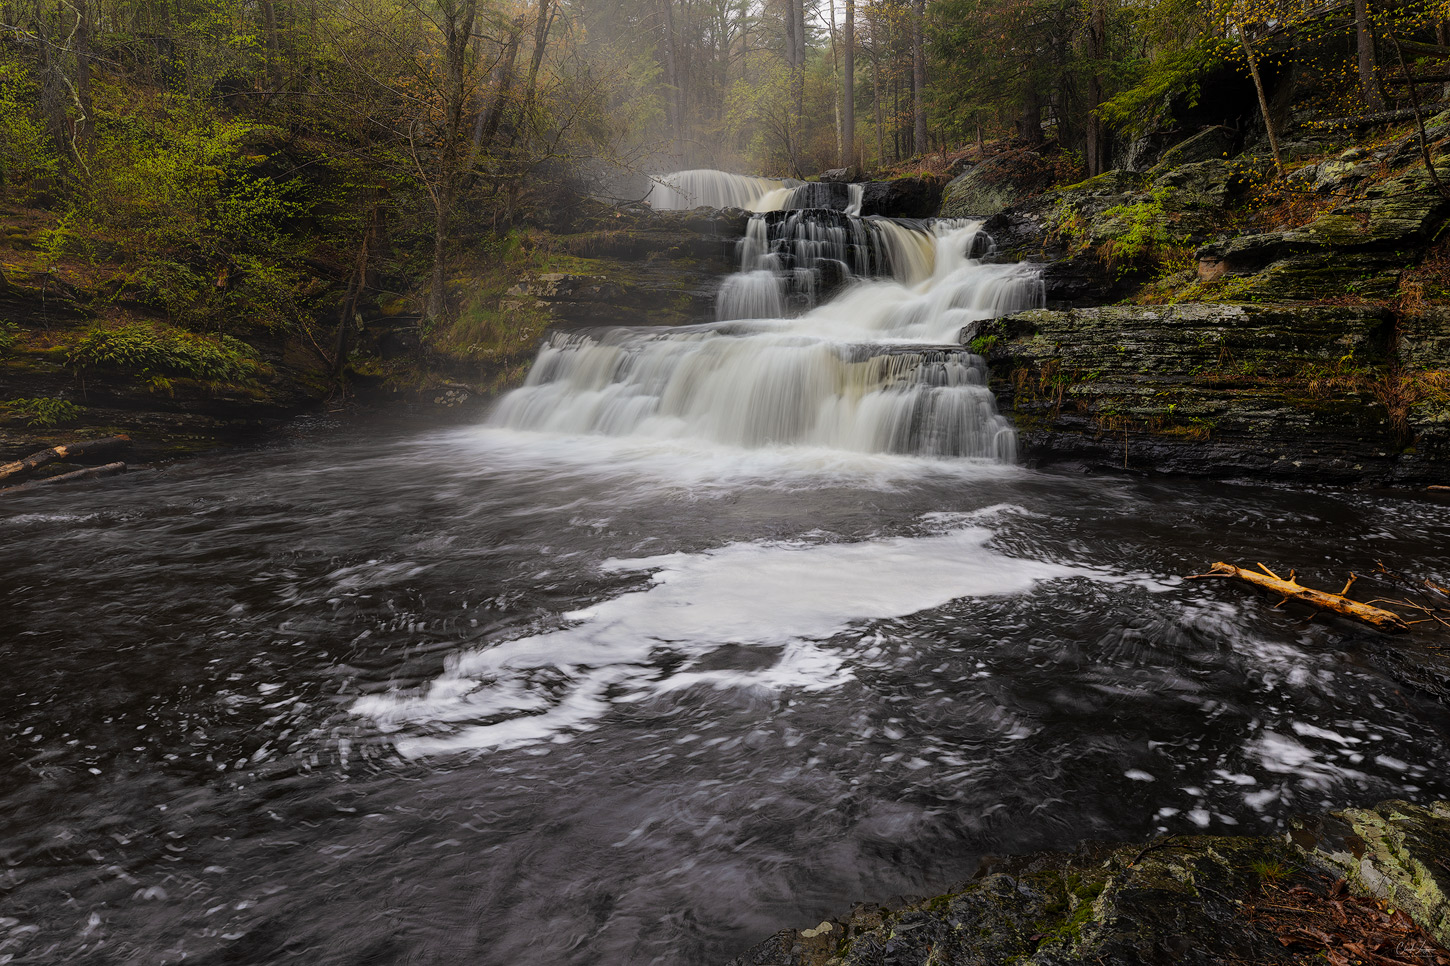 View of falls at W. Childs Park in Delaware Township in Pennsylvania.